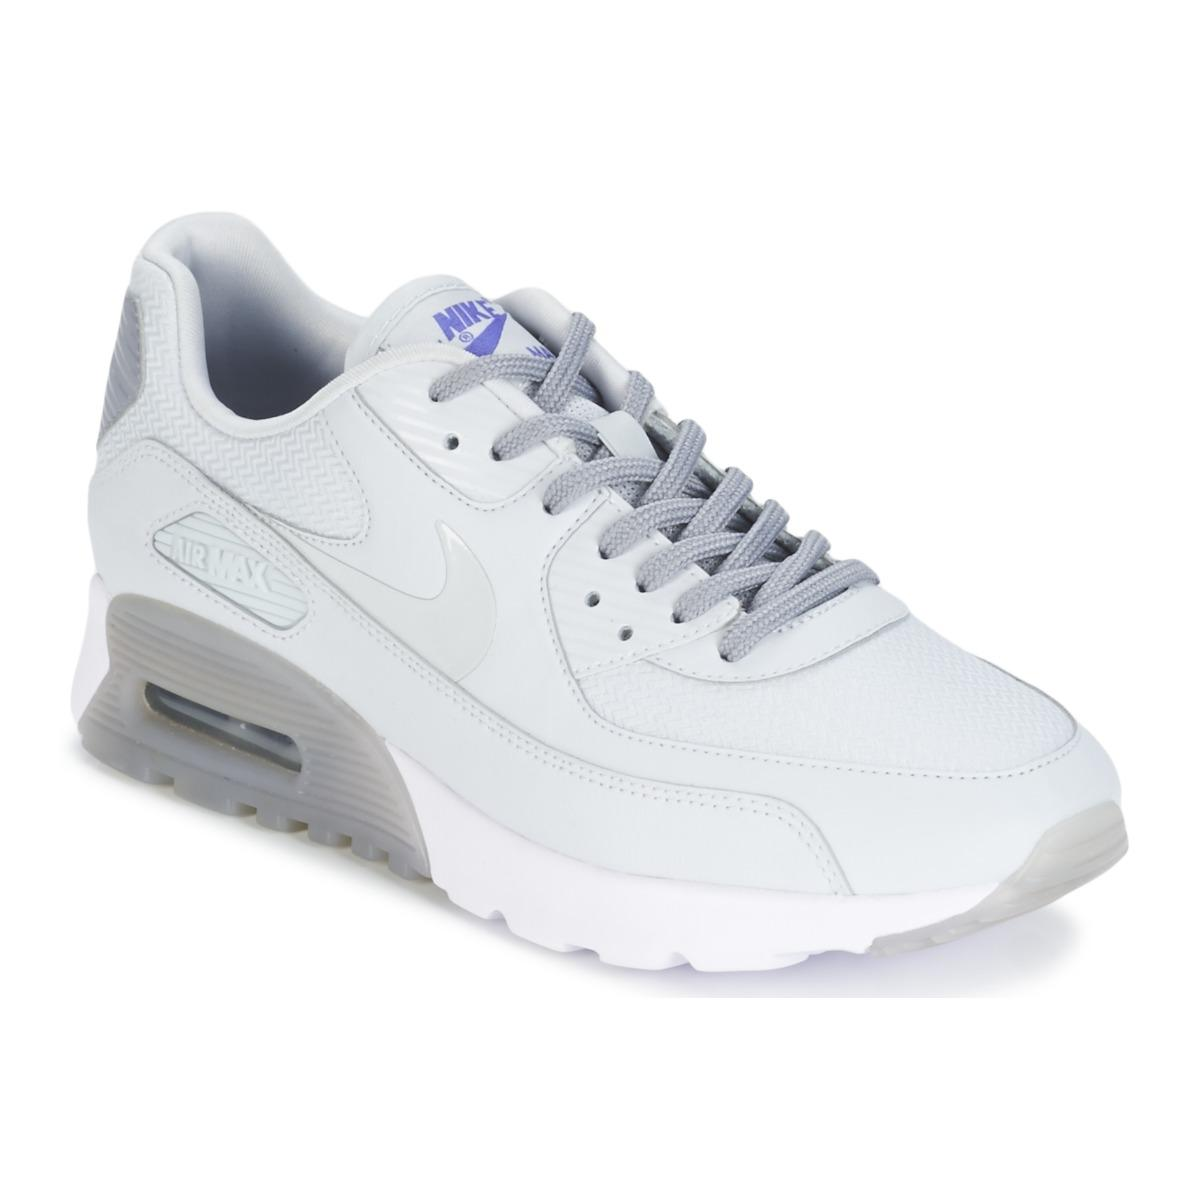 56258e86 Clothing, Shoes & Jewelry Nike WMNS Air Max 90 Essential 616730-110 Womens  Shoes